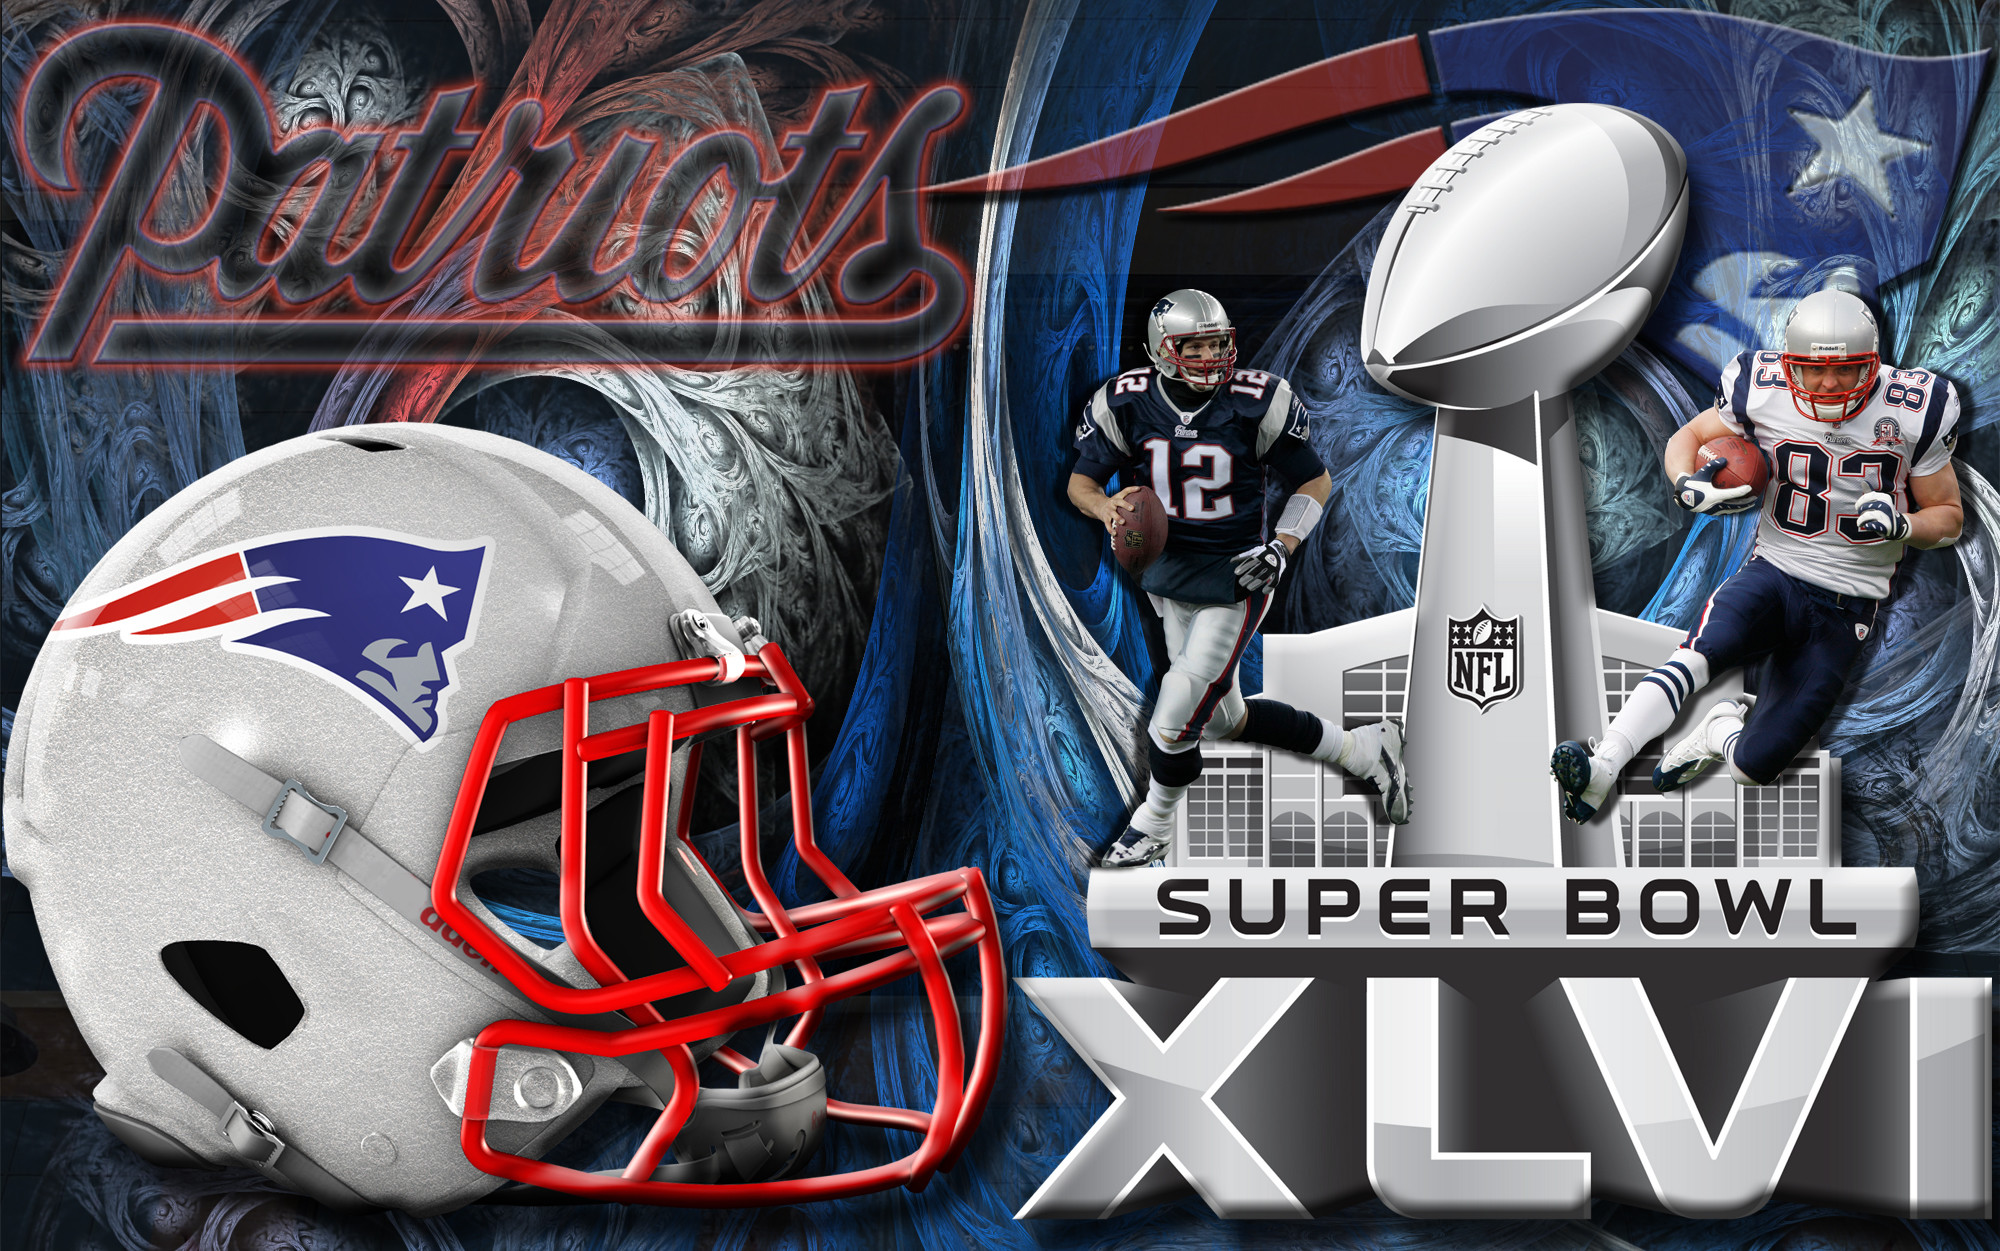 2000x1251 ... 16x10 Widescreen New England Patriots Super Bowl XLVI Wallpaper ...